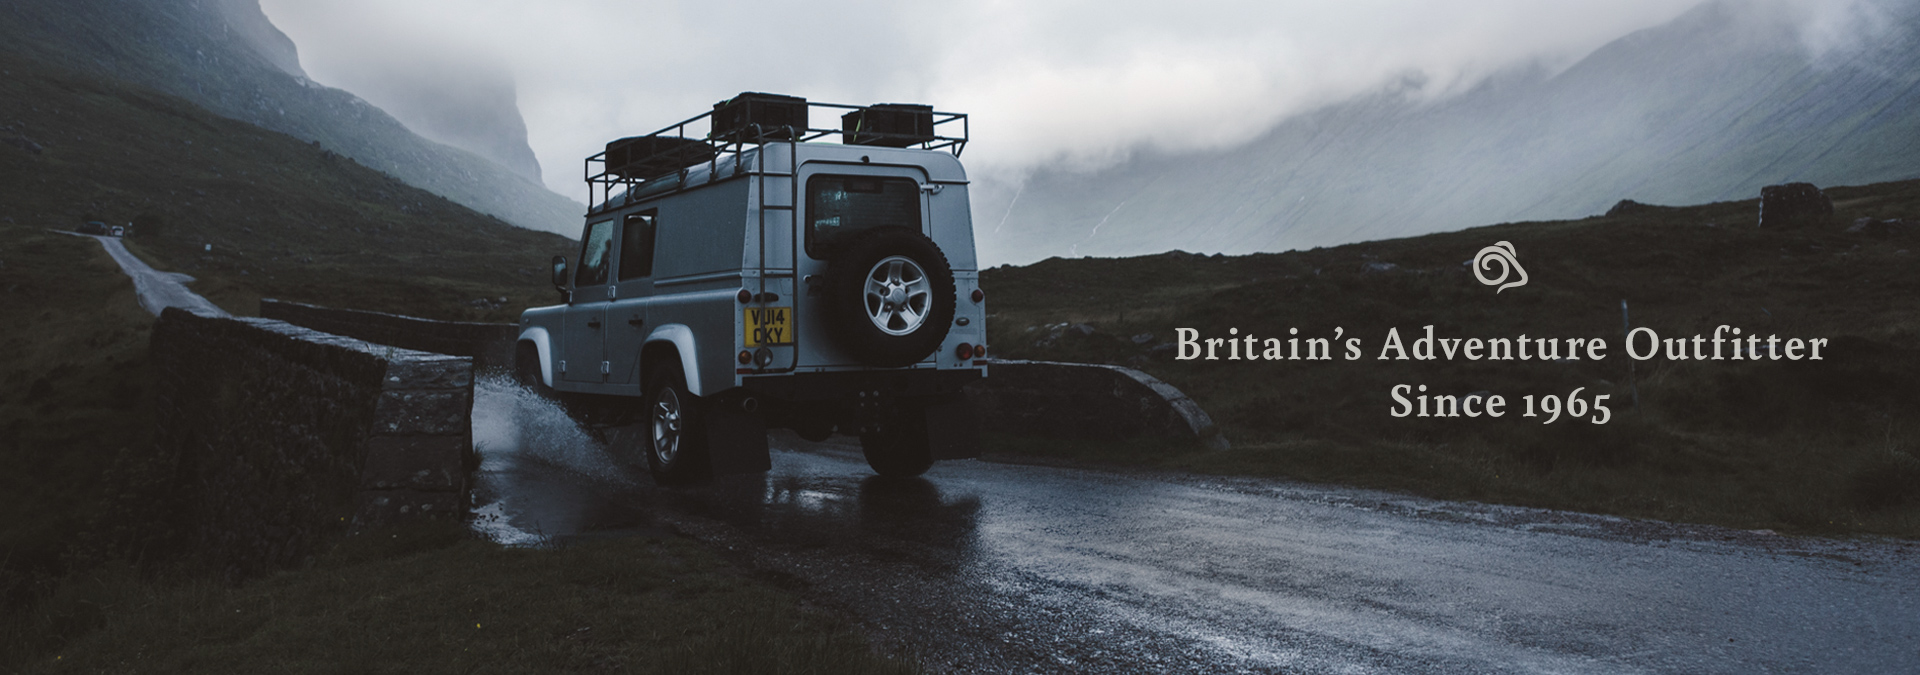 Britains Adventure Outfitter